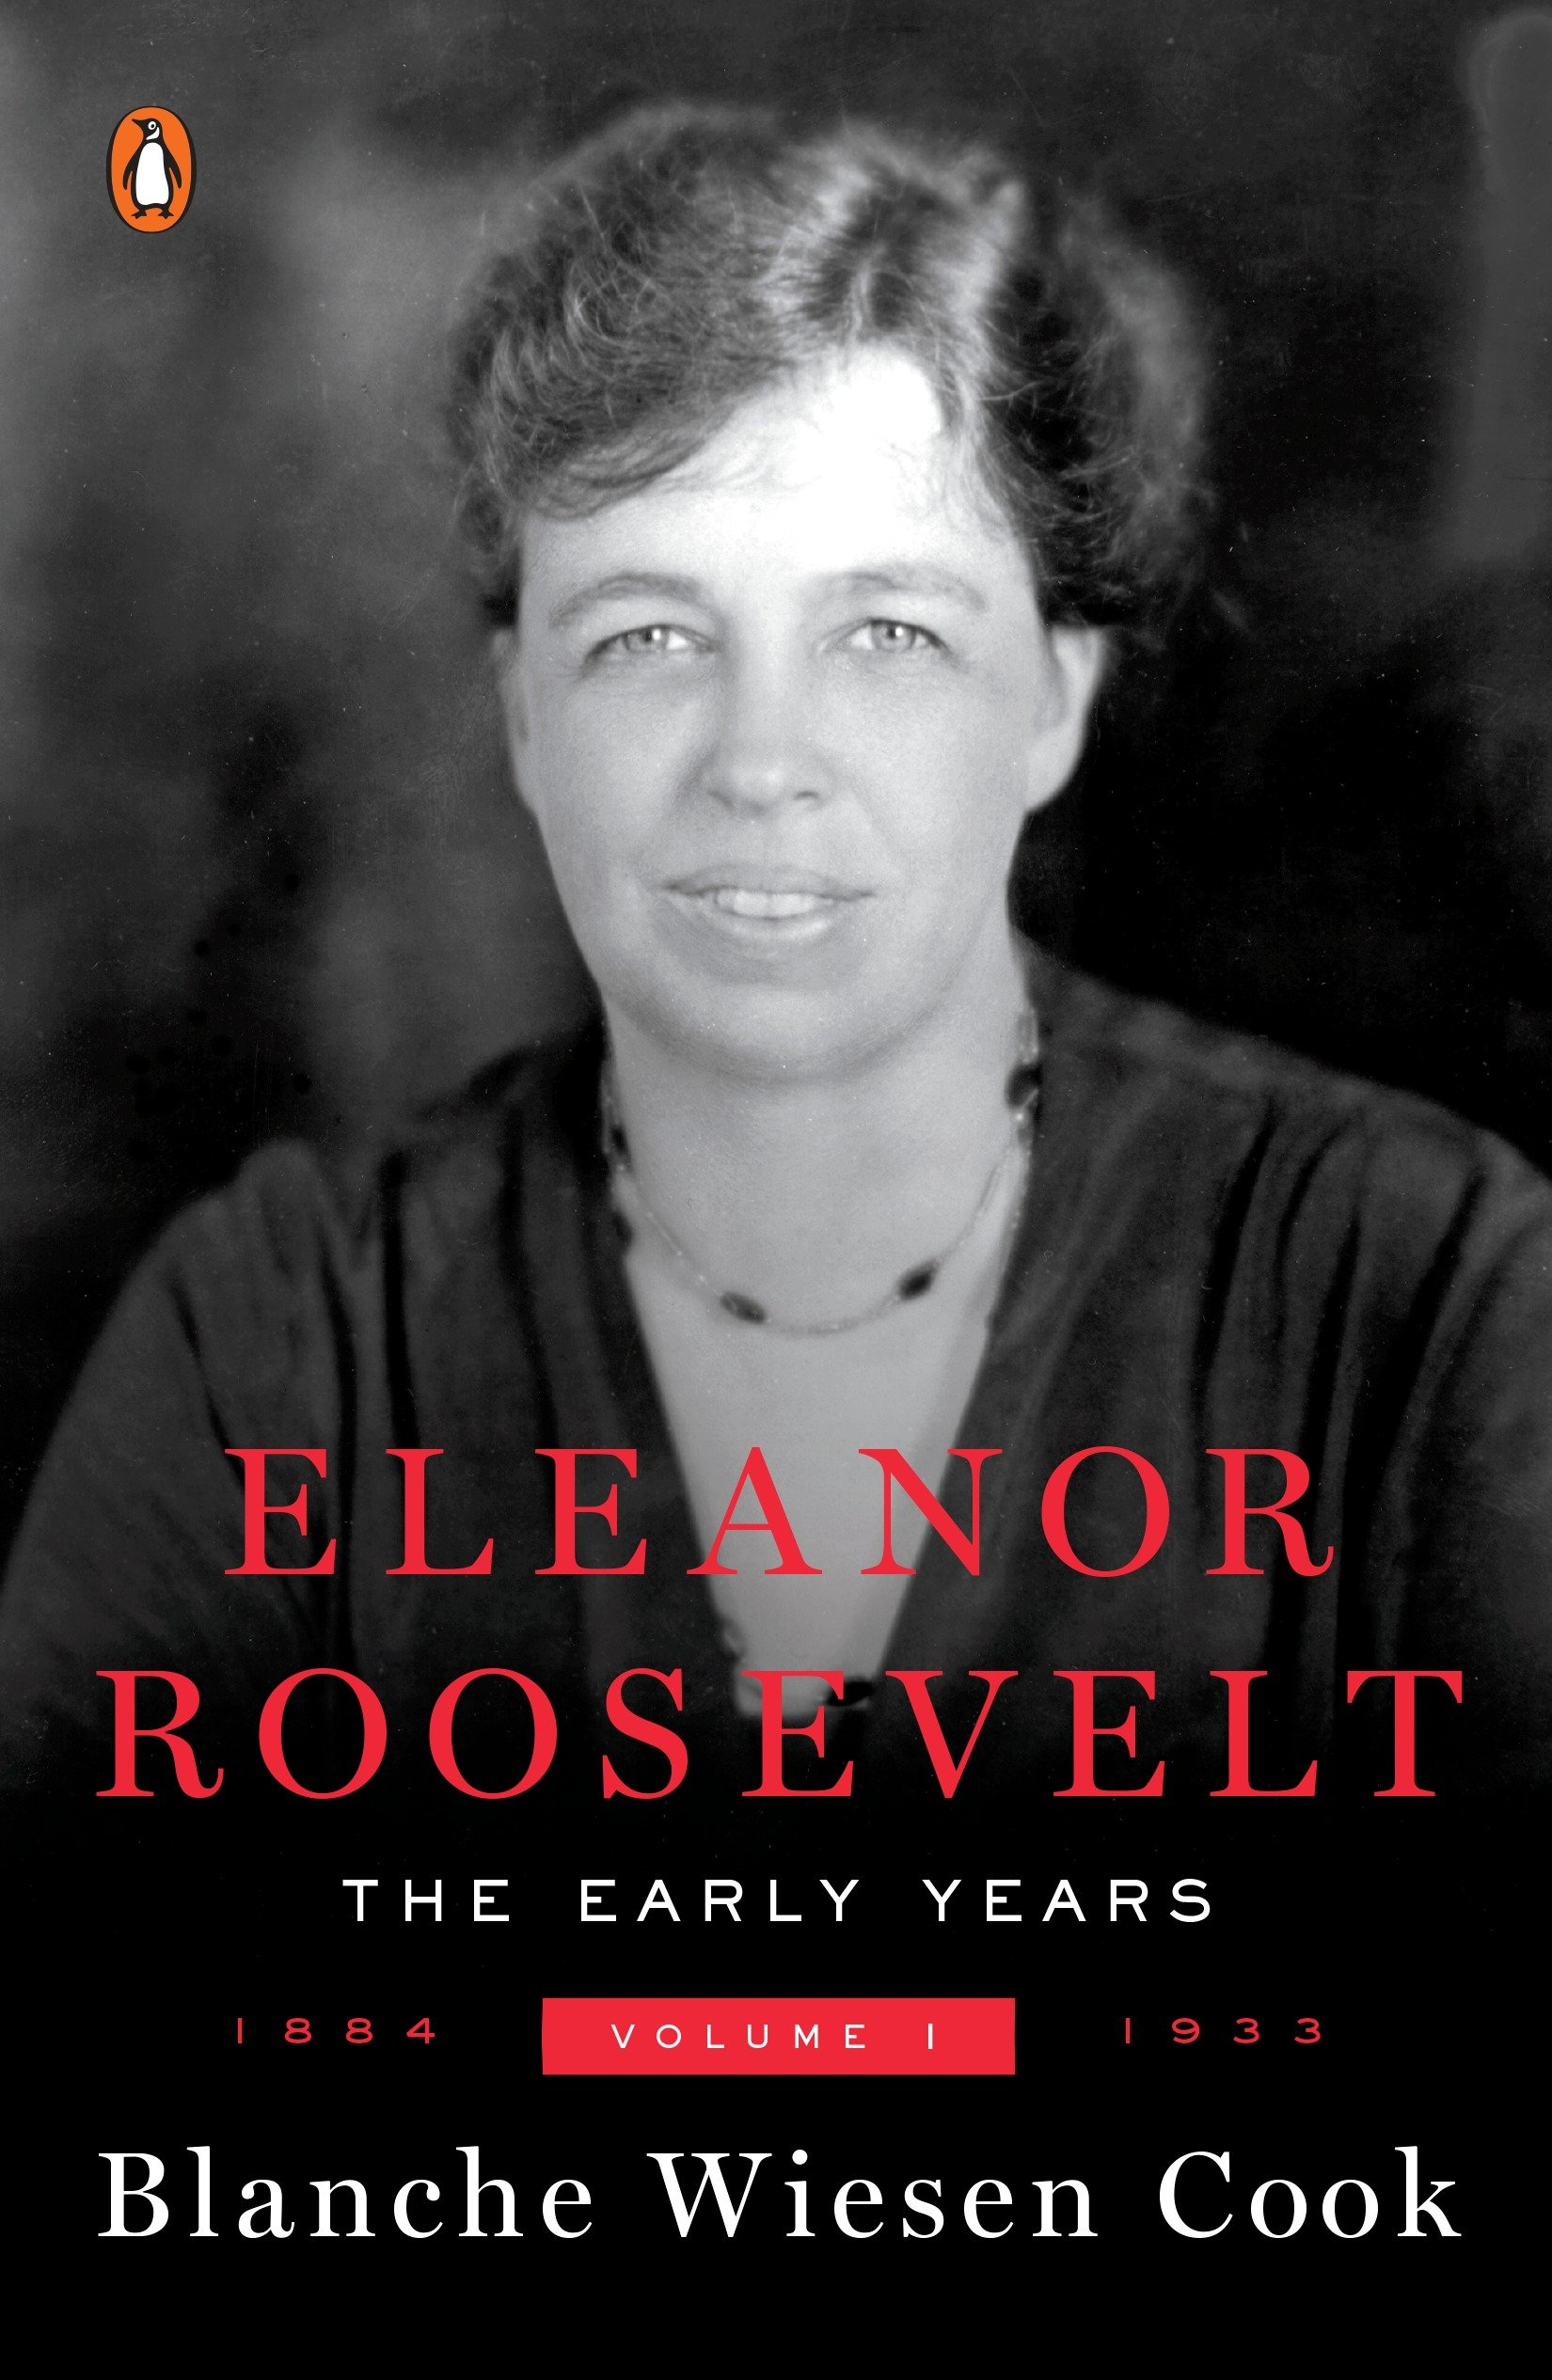 Eleanor Roosevelt, Volume 1 The Early Years, 1884-1933 cover image